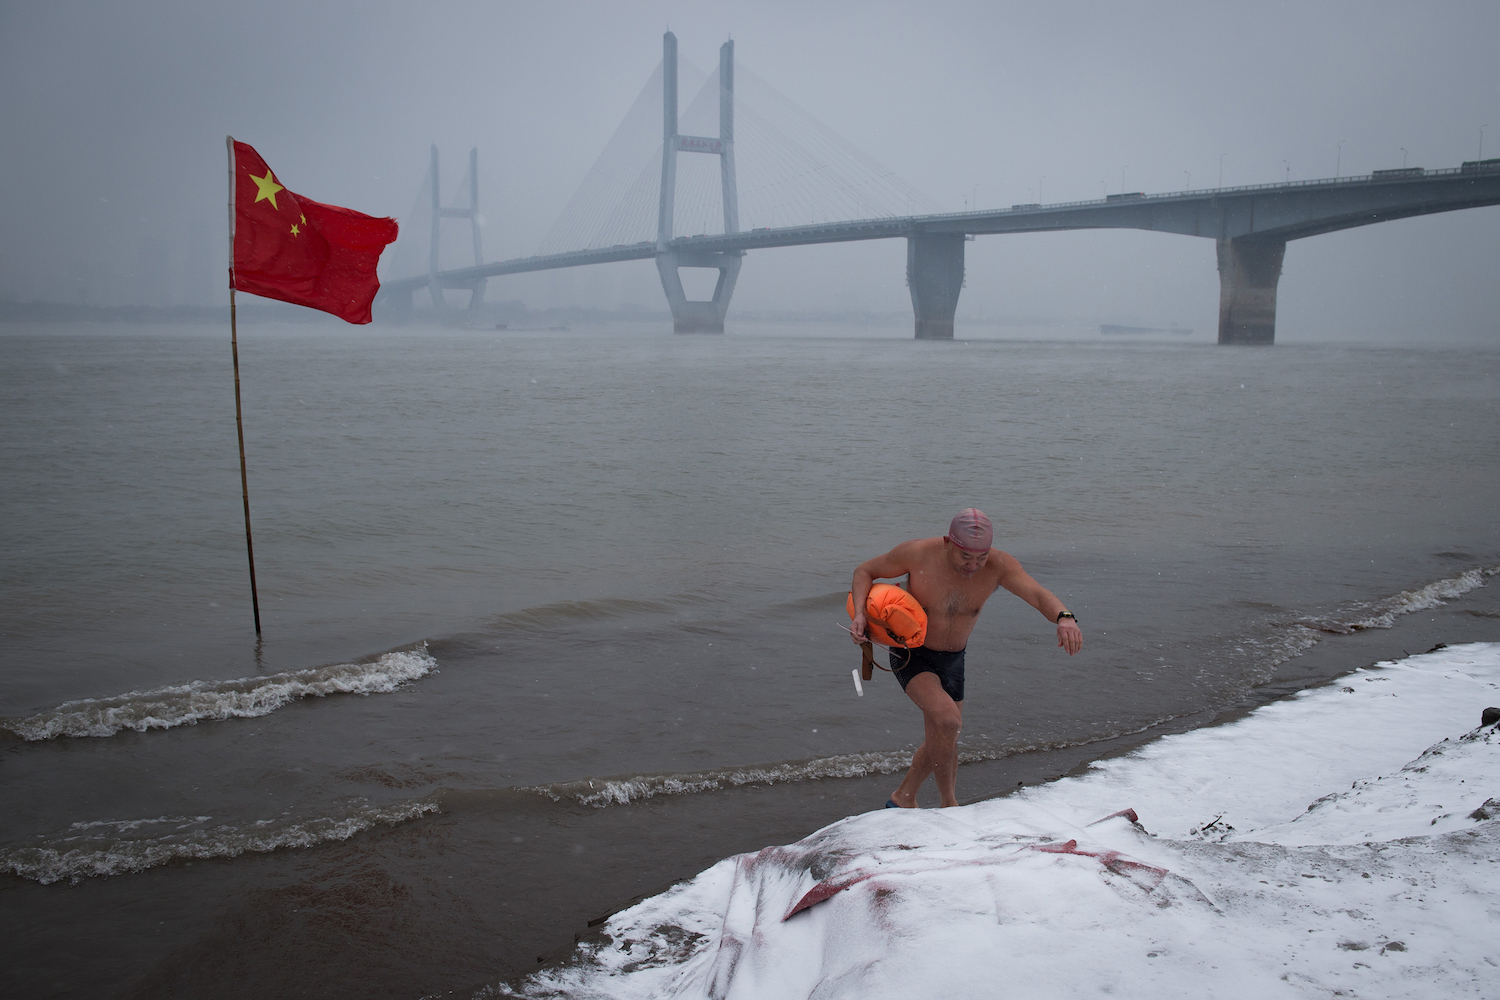 A man walks up the snow-covered bank of the Yangtze river after a swim in Wuhan, in China's central Hubei province on Jan. 25. China's central and eastern provinces have been hit by heavy snowfalls in recent days, causing disruptions to flight and train schedules. / AFP PHOTO / - / China OUT        (Photo credit should read -/AFP/Getty Images)